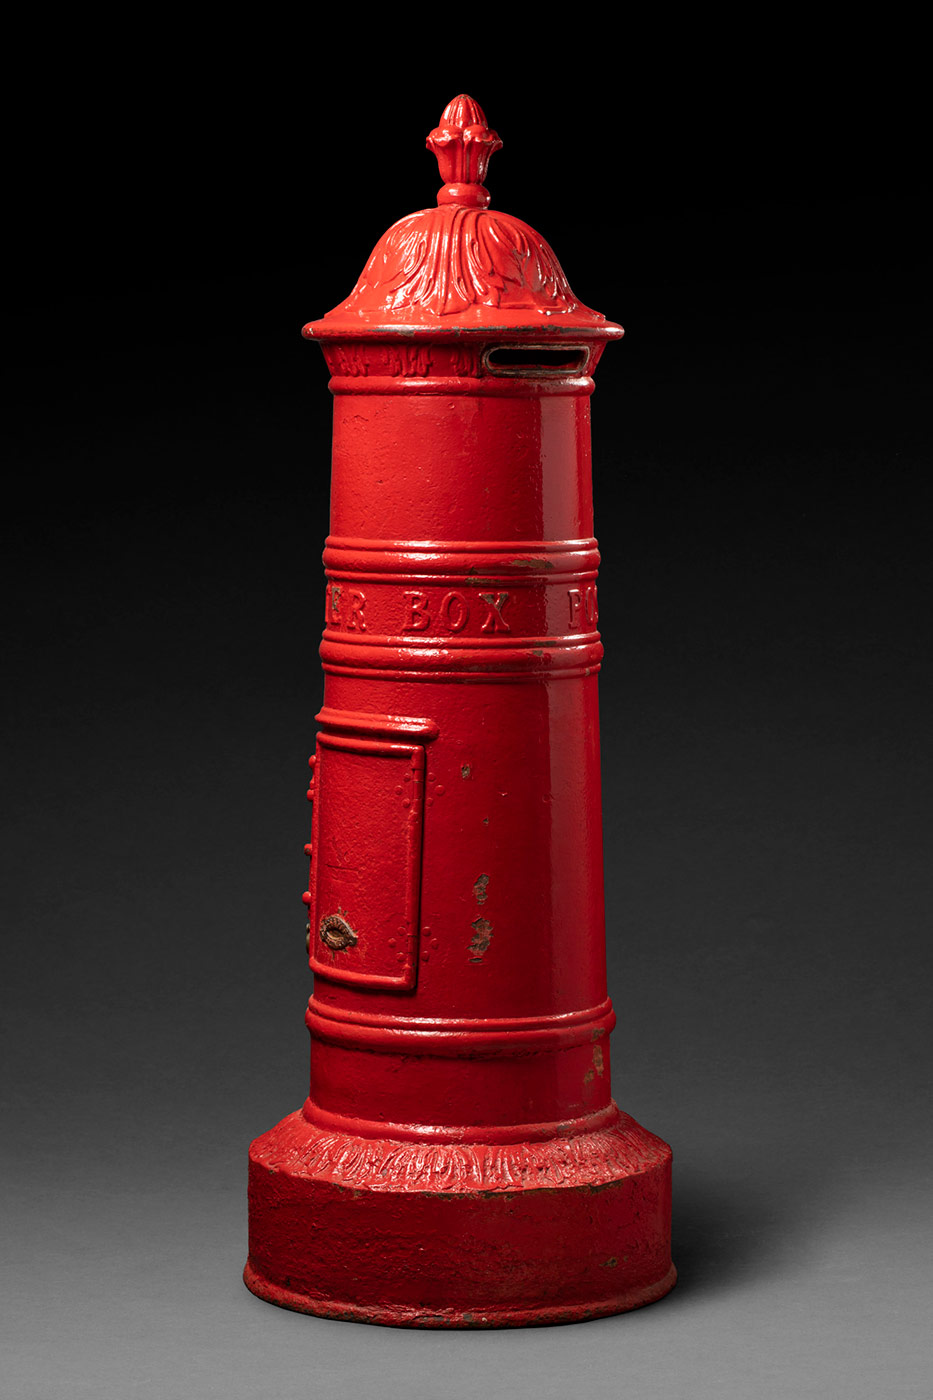 An old fashioned red postal box. - click to view larger image